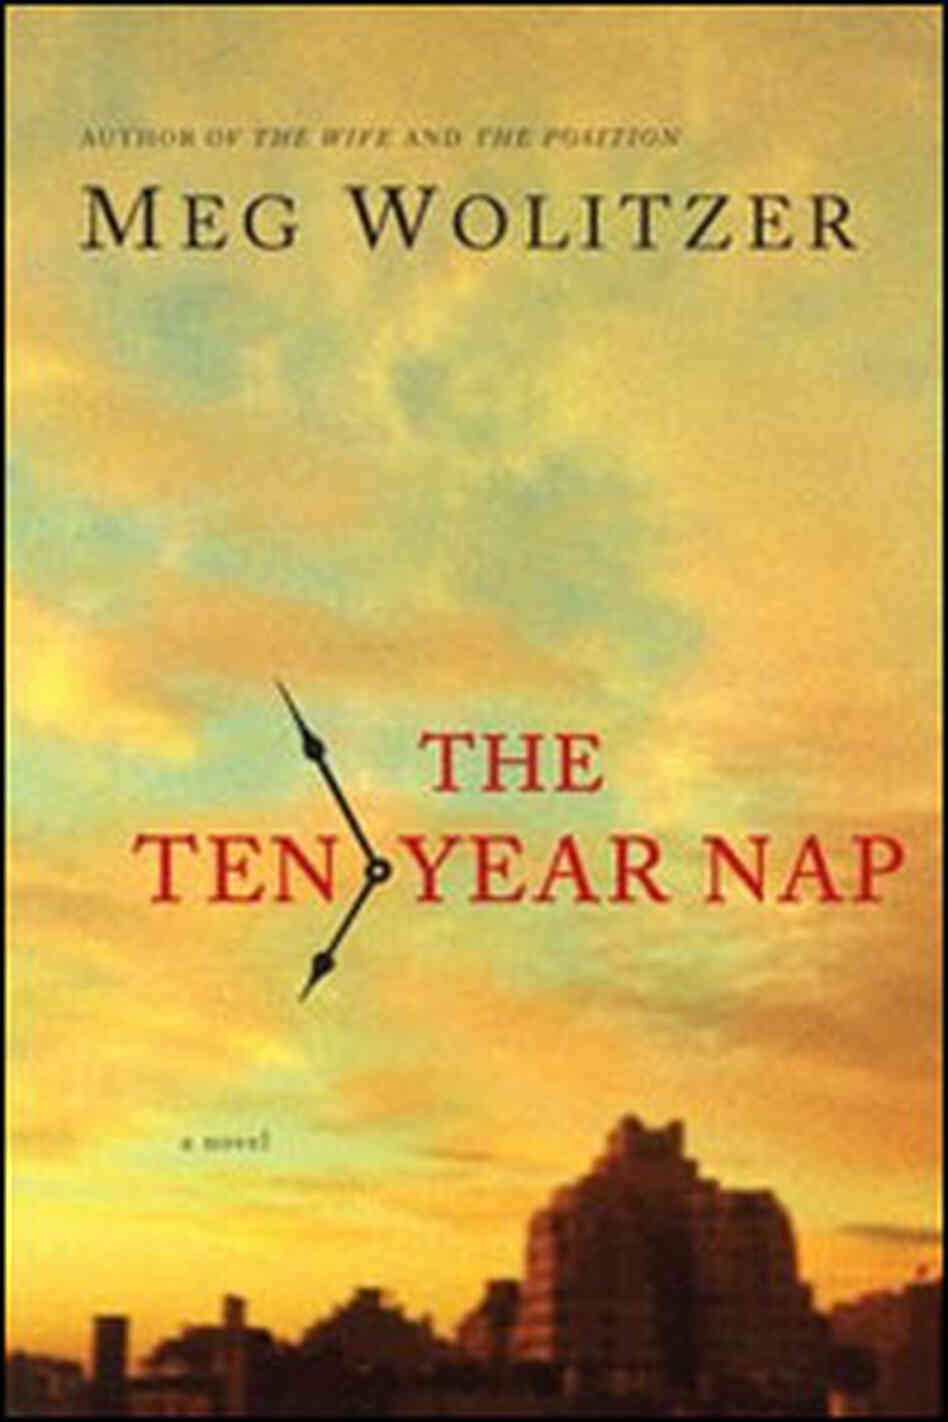 The Ten Year Nap